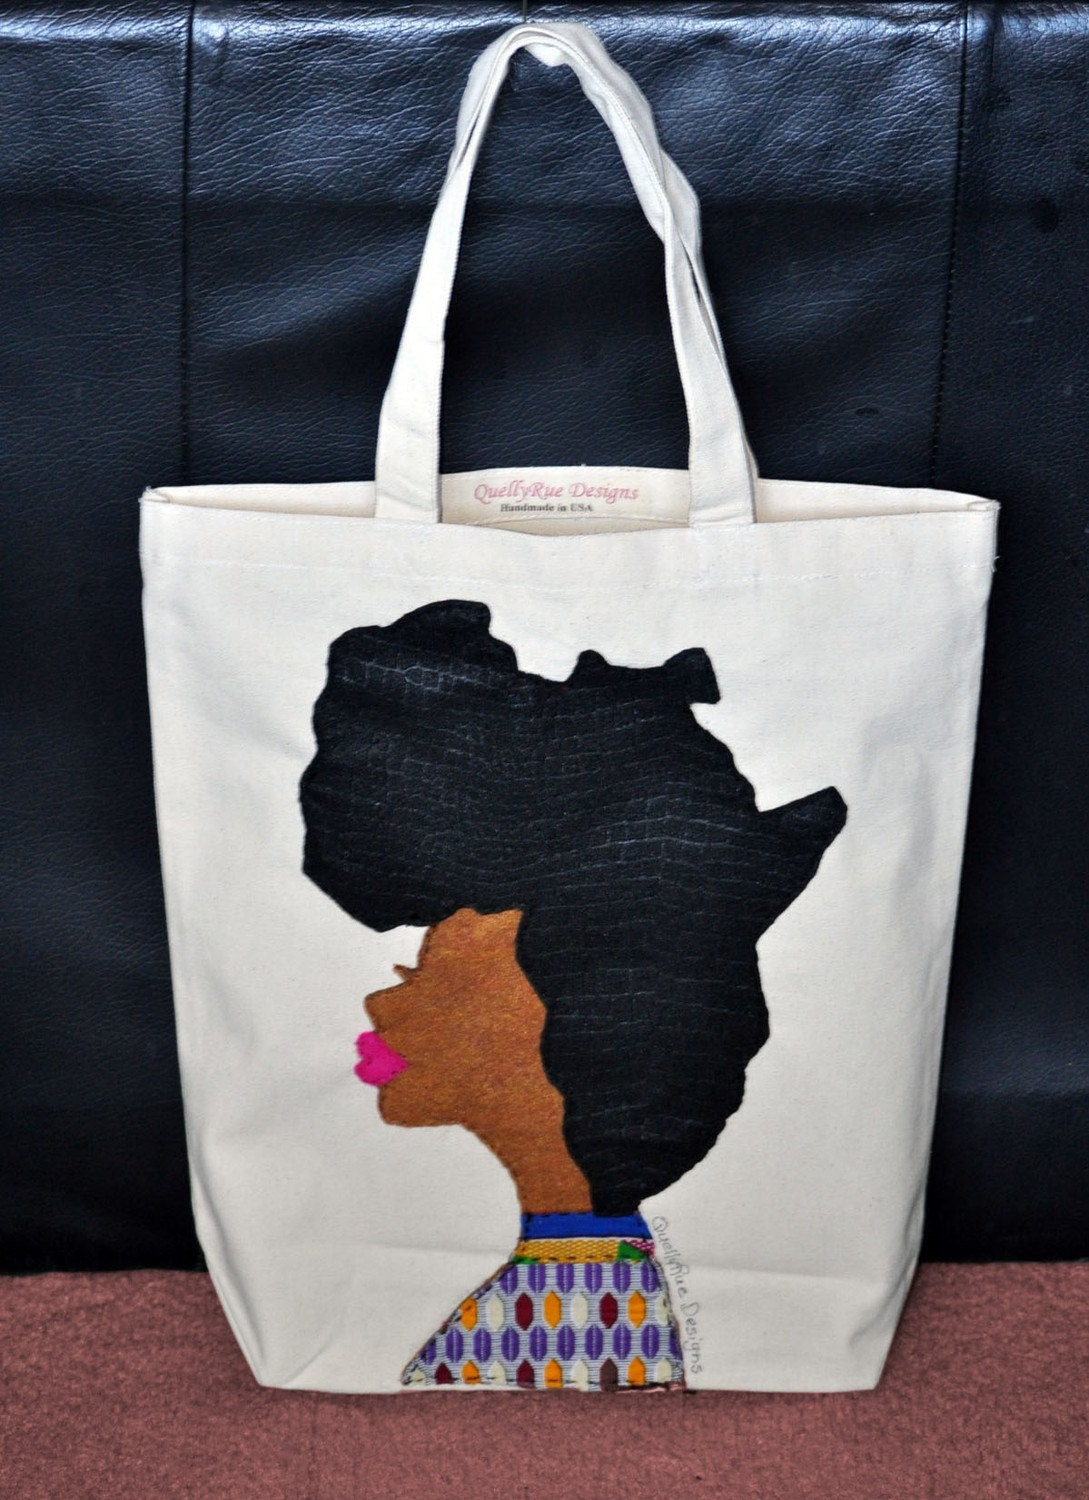 Afro Woman Tote Bag By Quellyruedesigns On Etsy